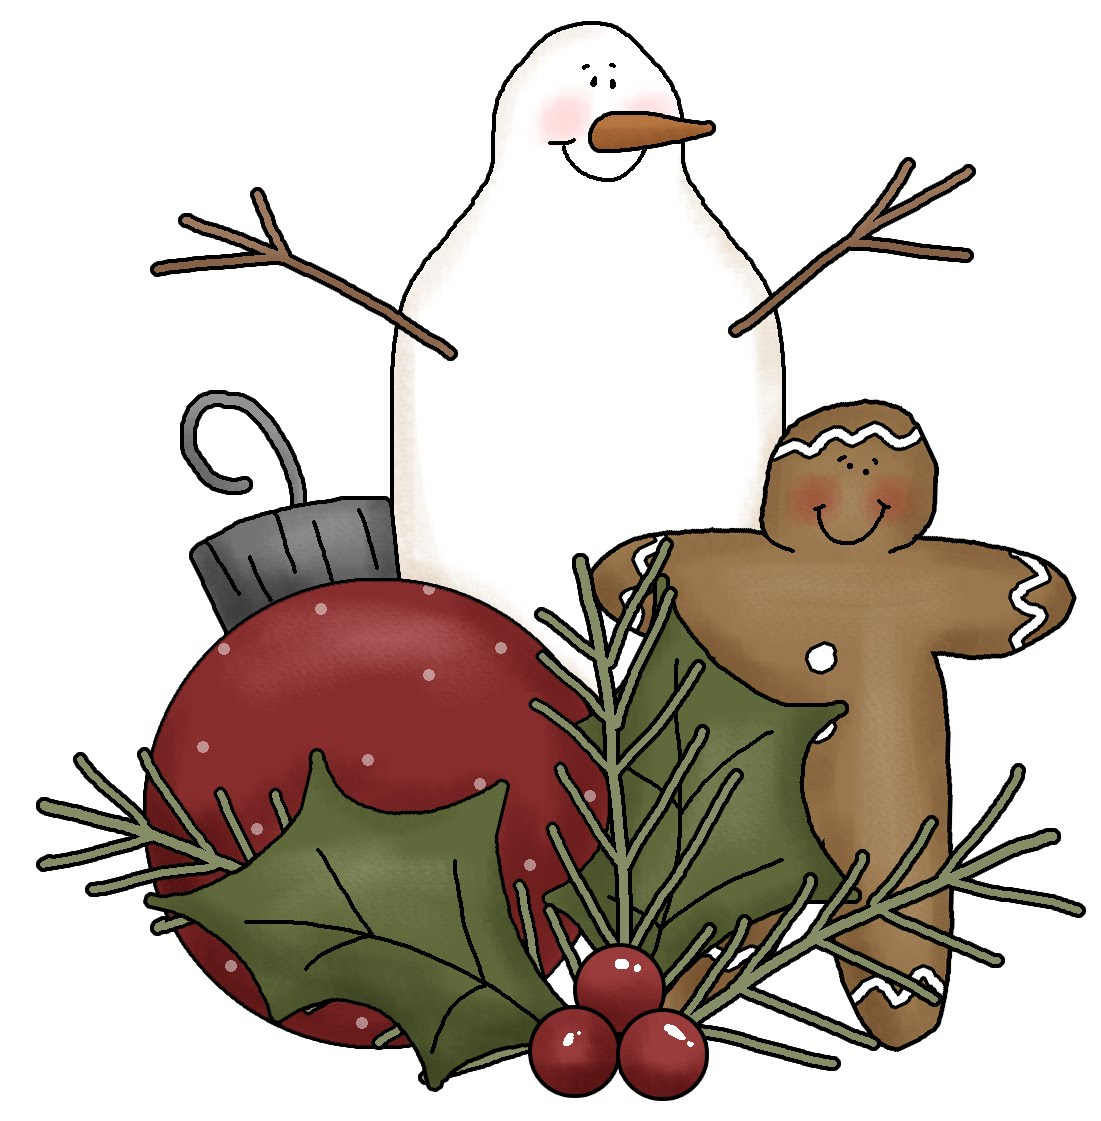 Christmas craft show clipart image library download Christmas Craft Fair | Explore York image library download